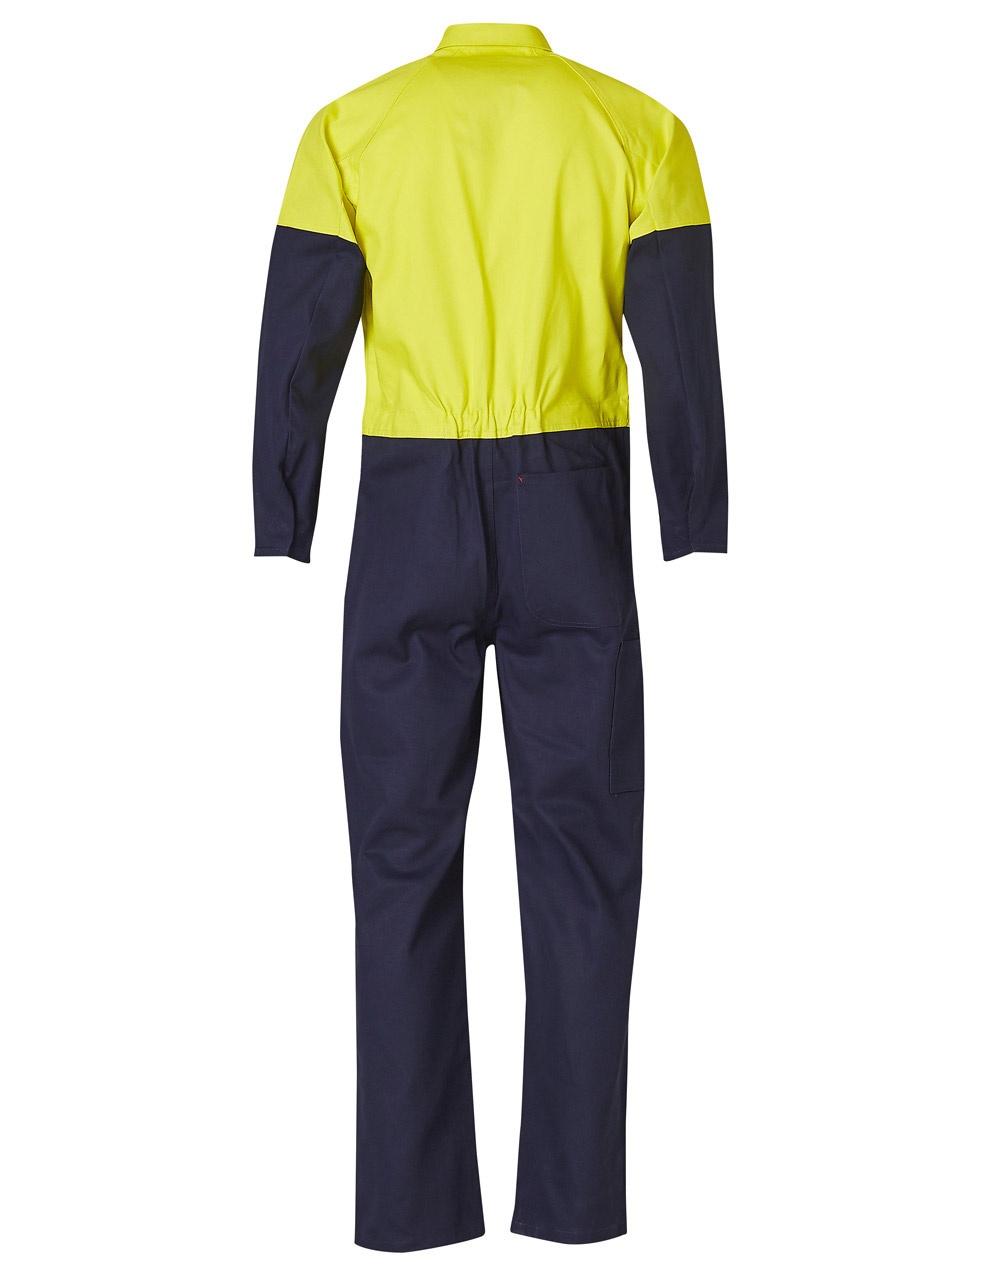 https://s3-ap-southeast-1.amazonaws.com/ws-imgs/WORKWEAR/SW204_YellowNavy_Back.jpg